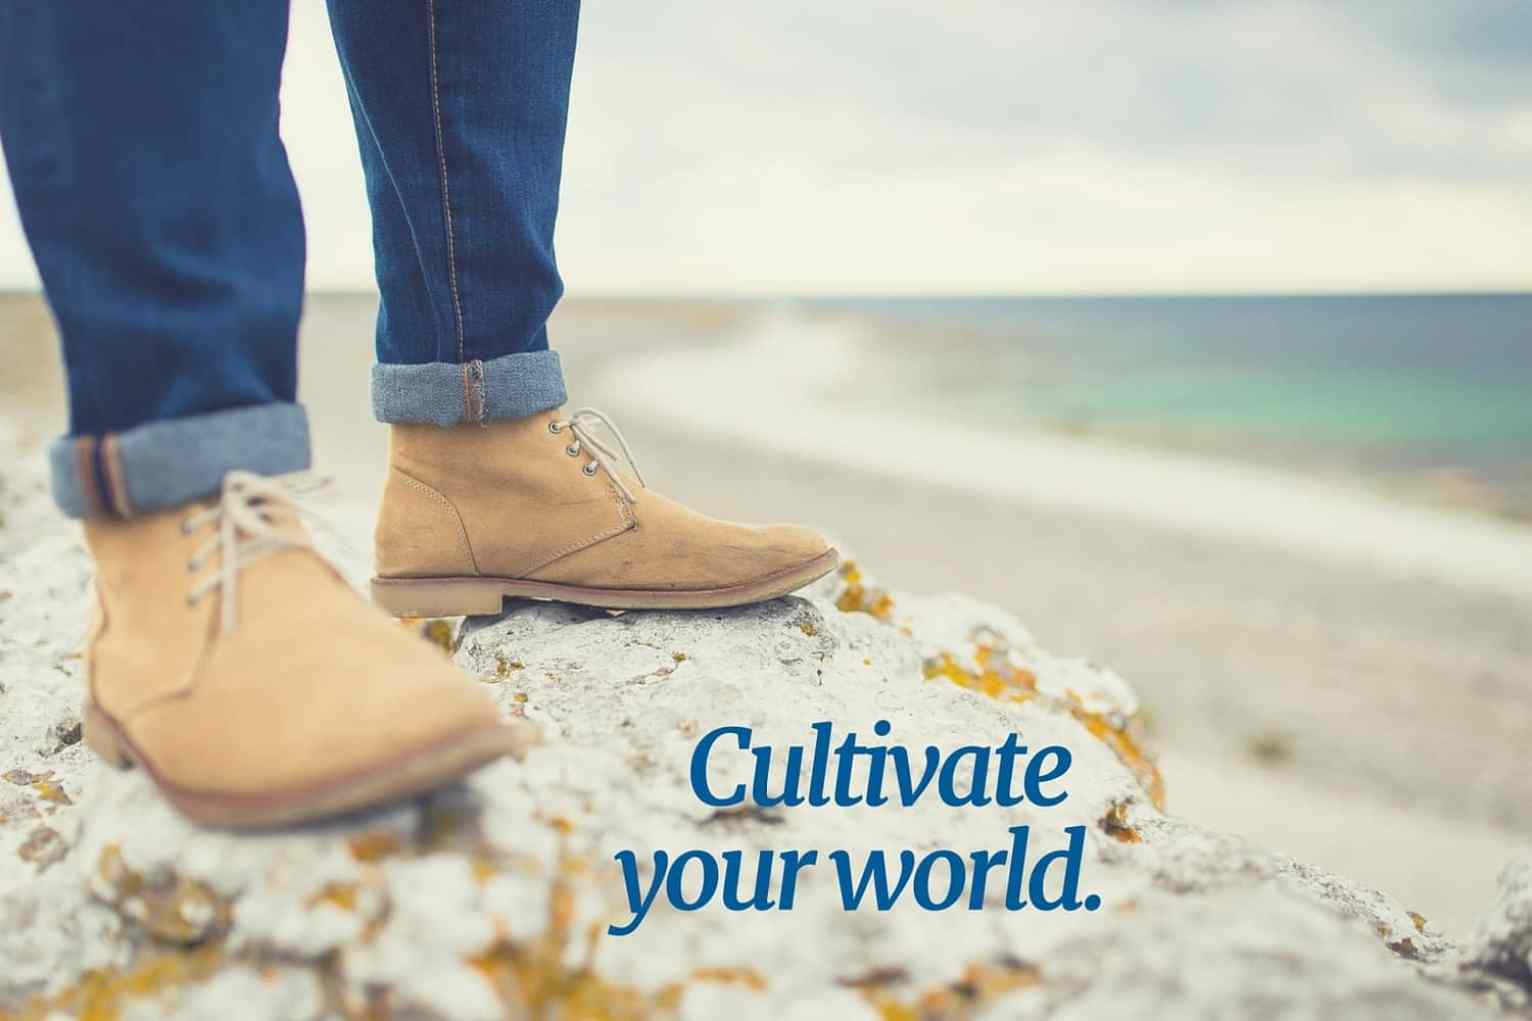 cultivate your world